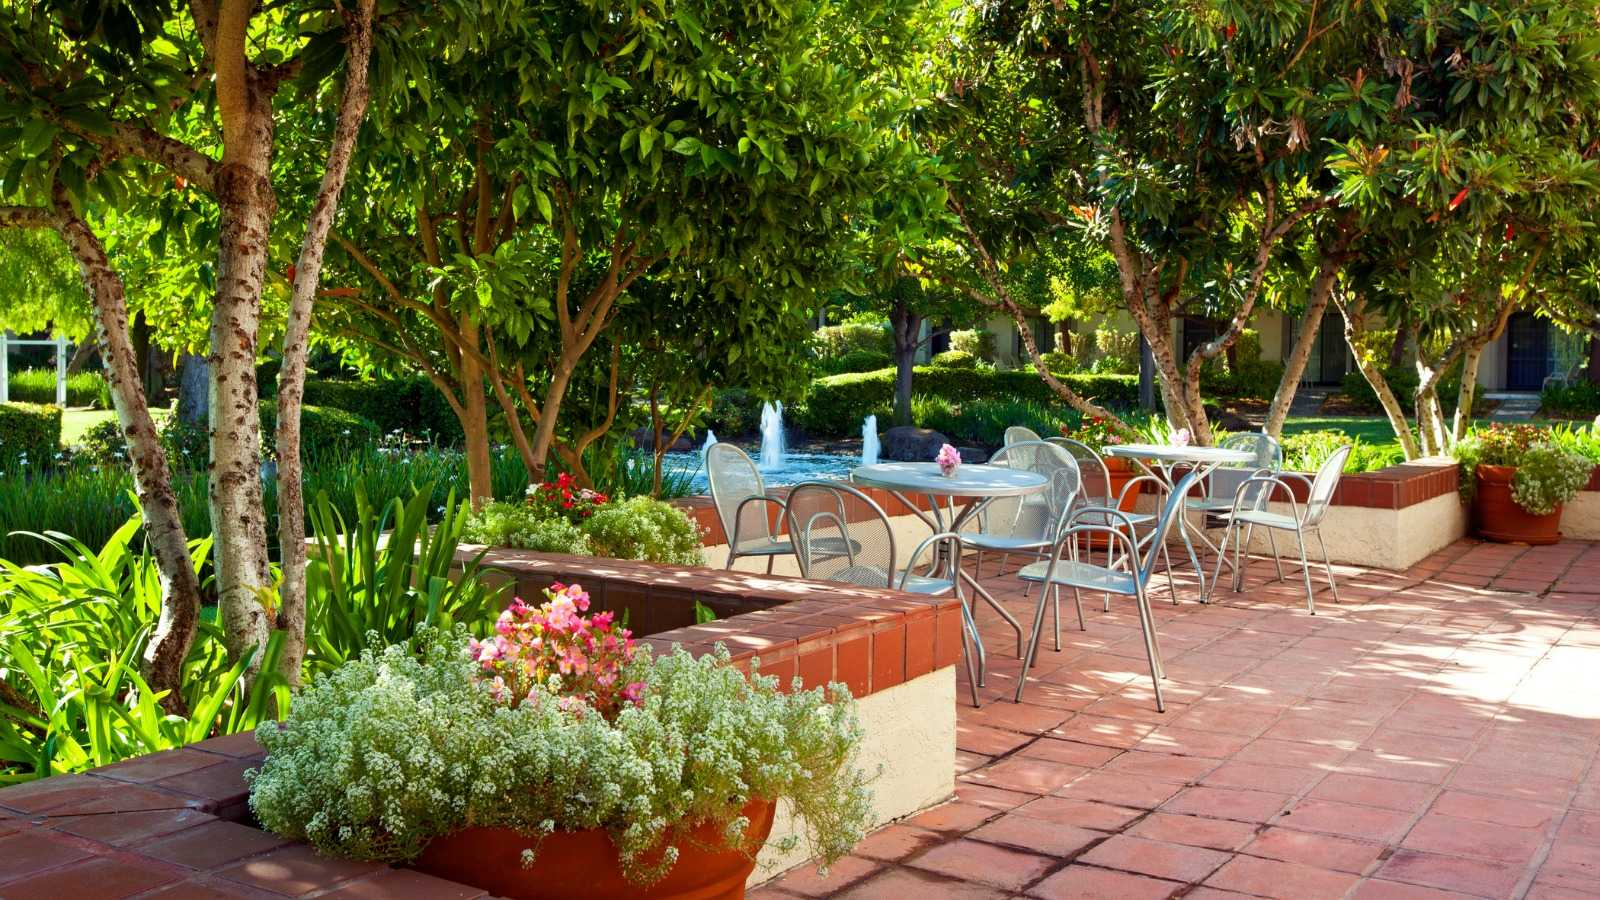 Pleasanton Wedding Venues - Patio